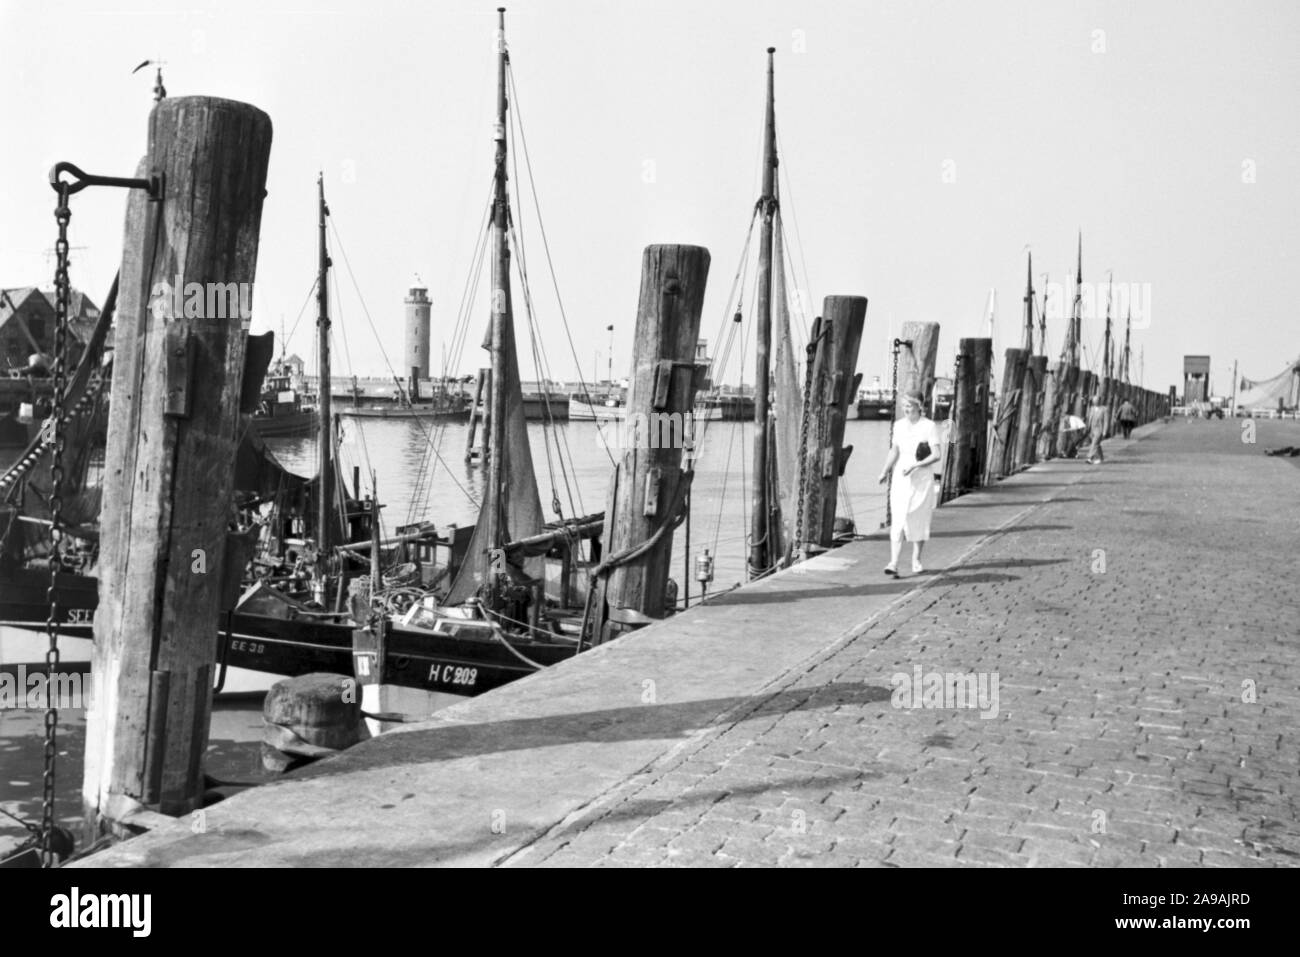 A young woman out and around at Cuxhaven, Germany 1930s. Stock Photo